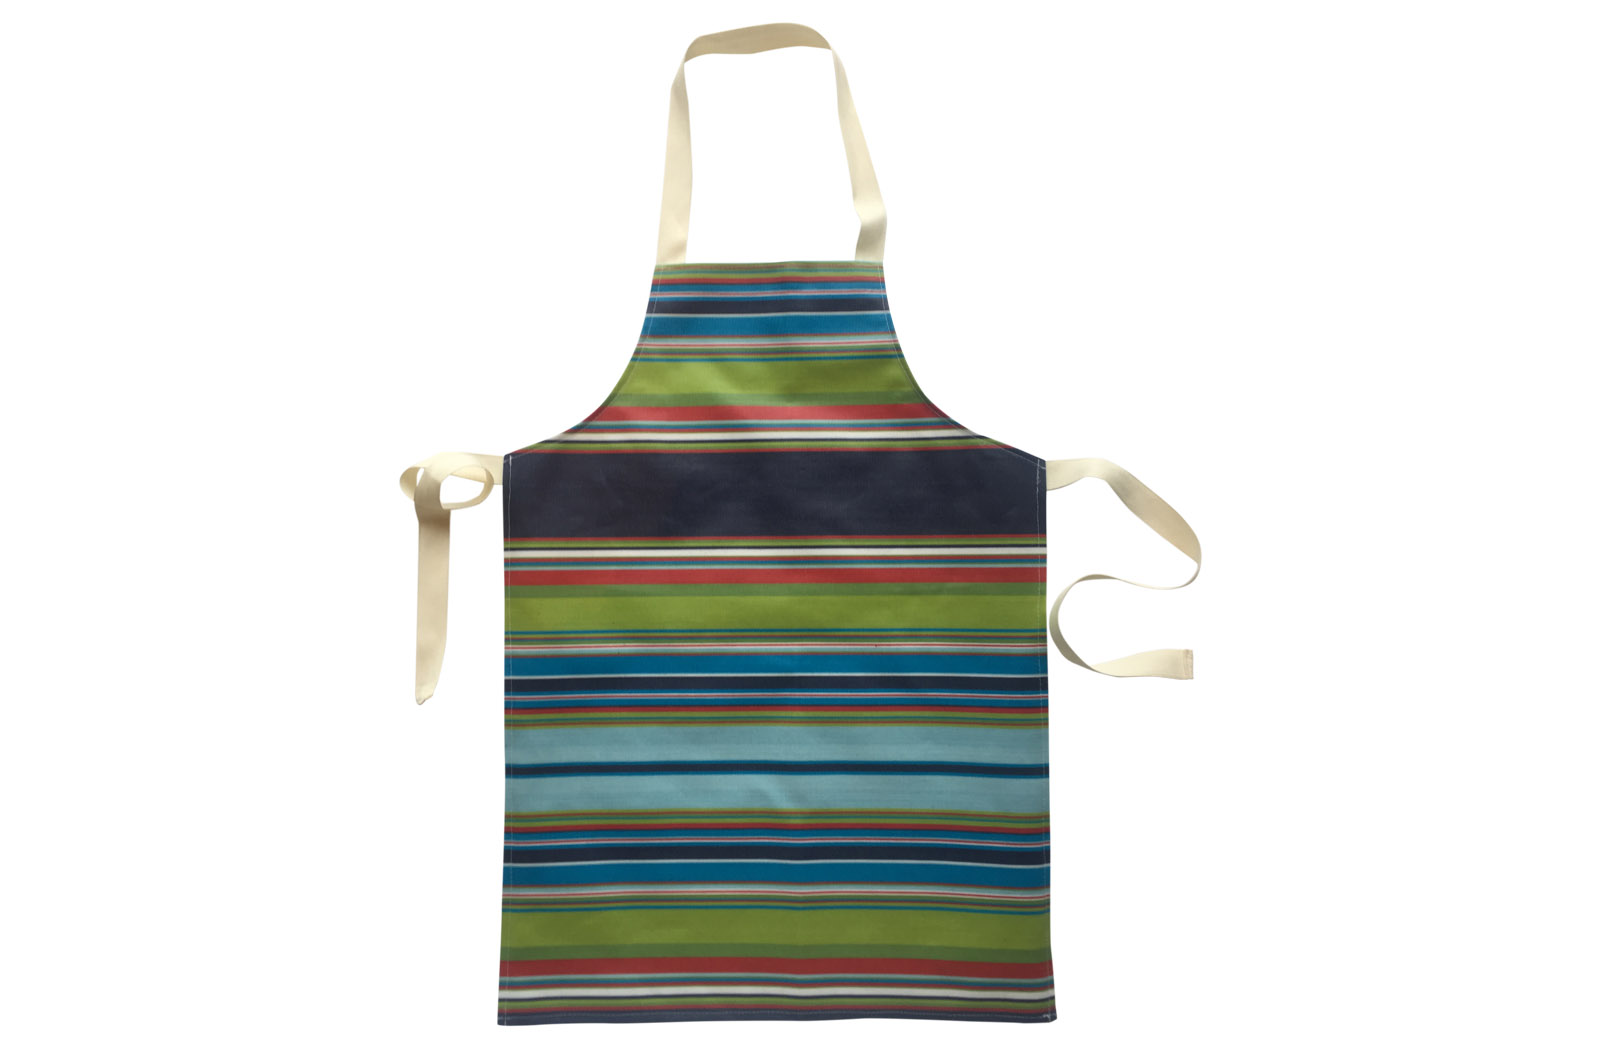 PVC Oilcloth Apron for Children - navy blue, pale blue, turquoise, green, red stripes